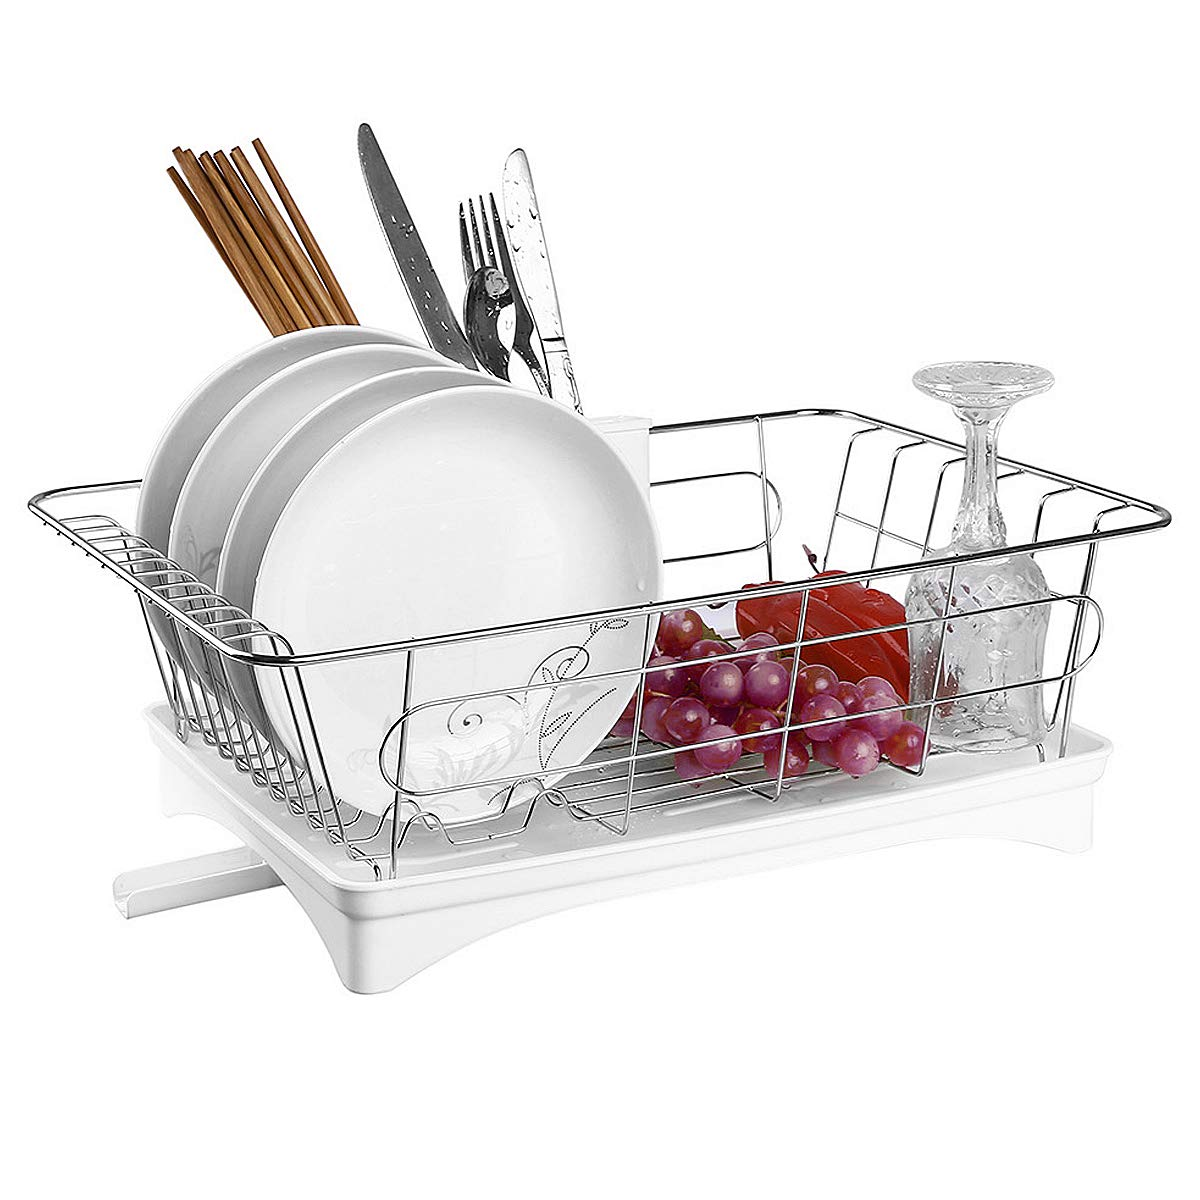 Acrux7 Kitchen Dish Drying Rack & Dish Drainer Tray with Adjustable Outlet to Sink & Spoon Holder, Stainless Steel Dish Rack/White Plastic Accessories, Kitchen Utensil Drying Rack Kit